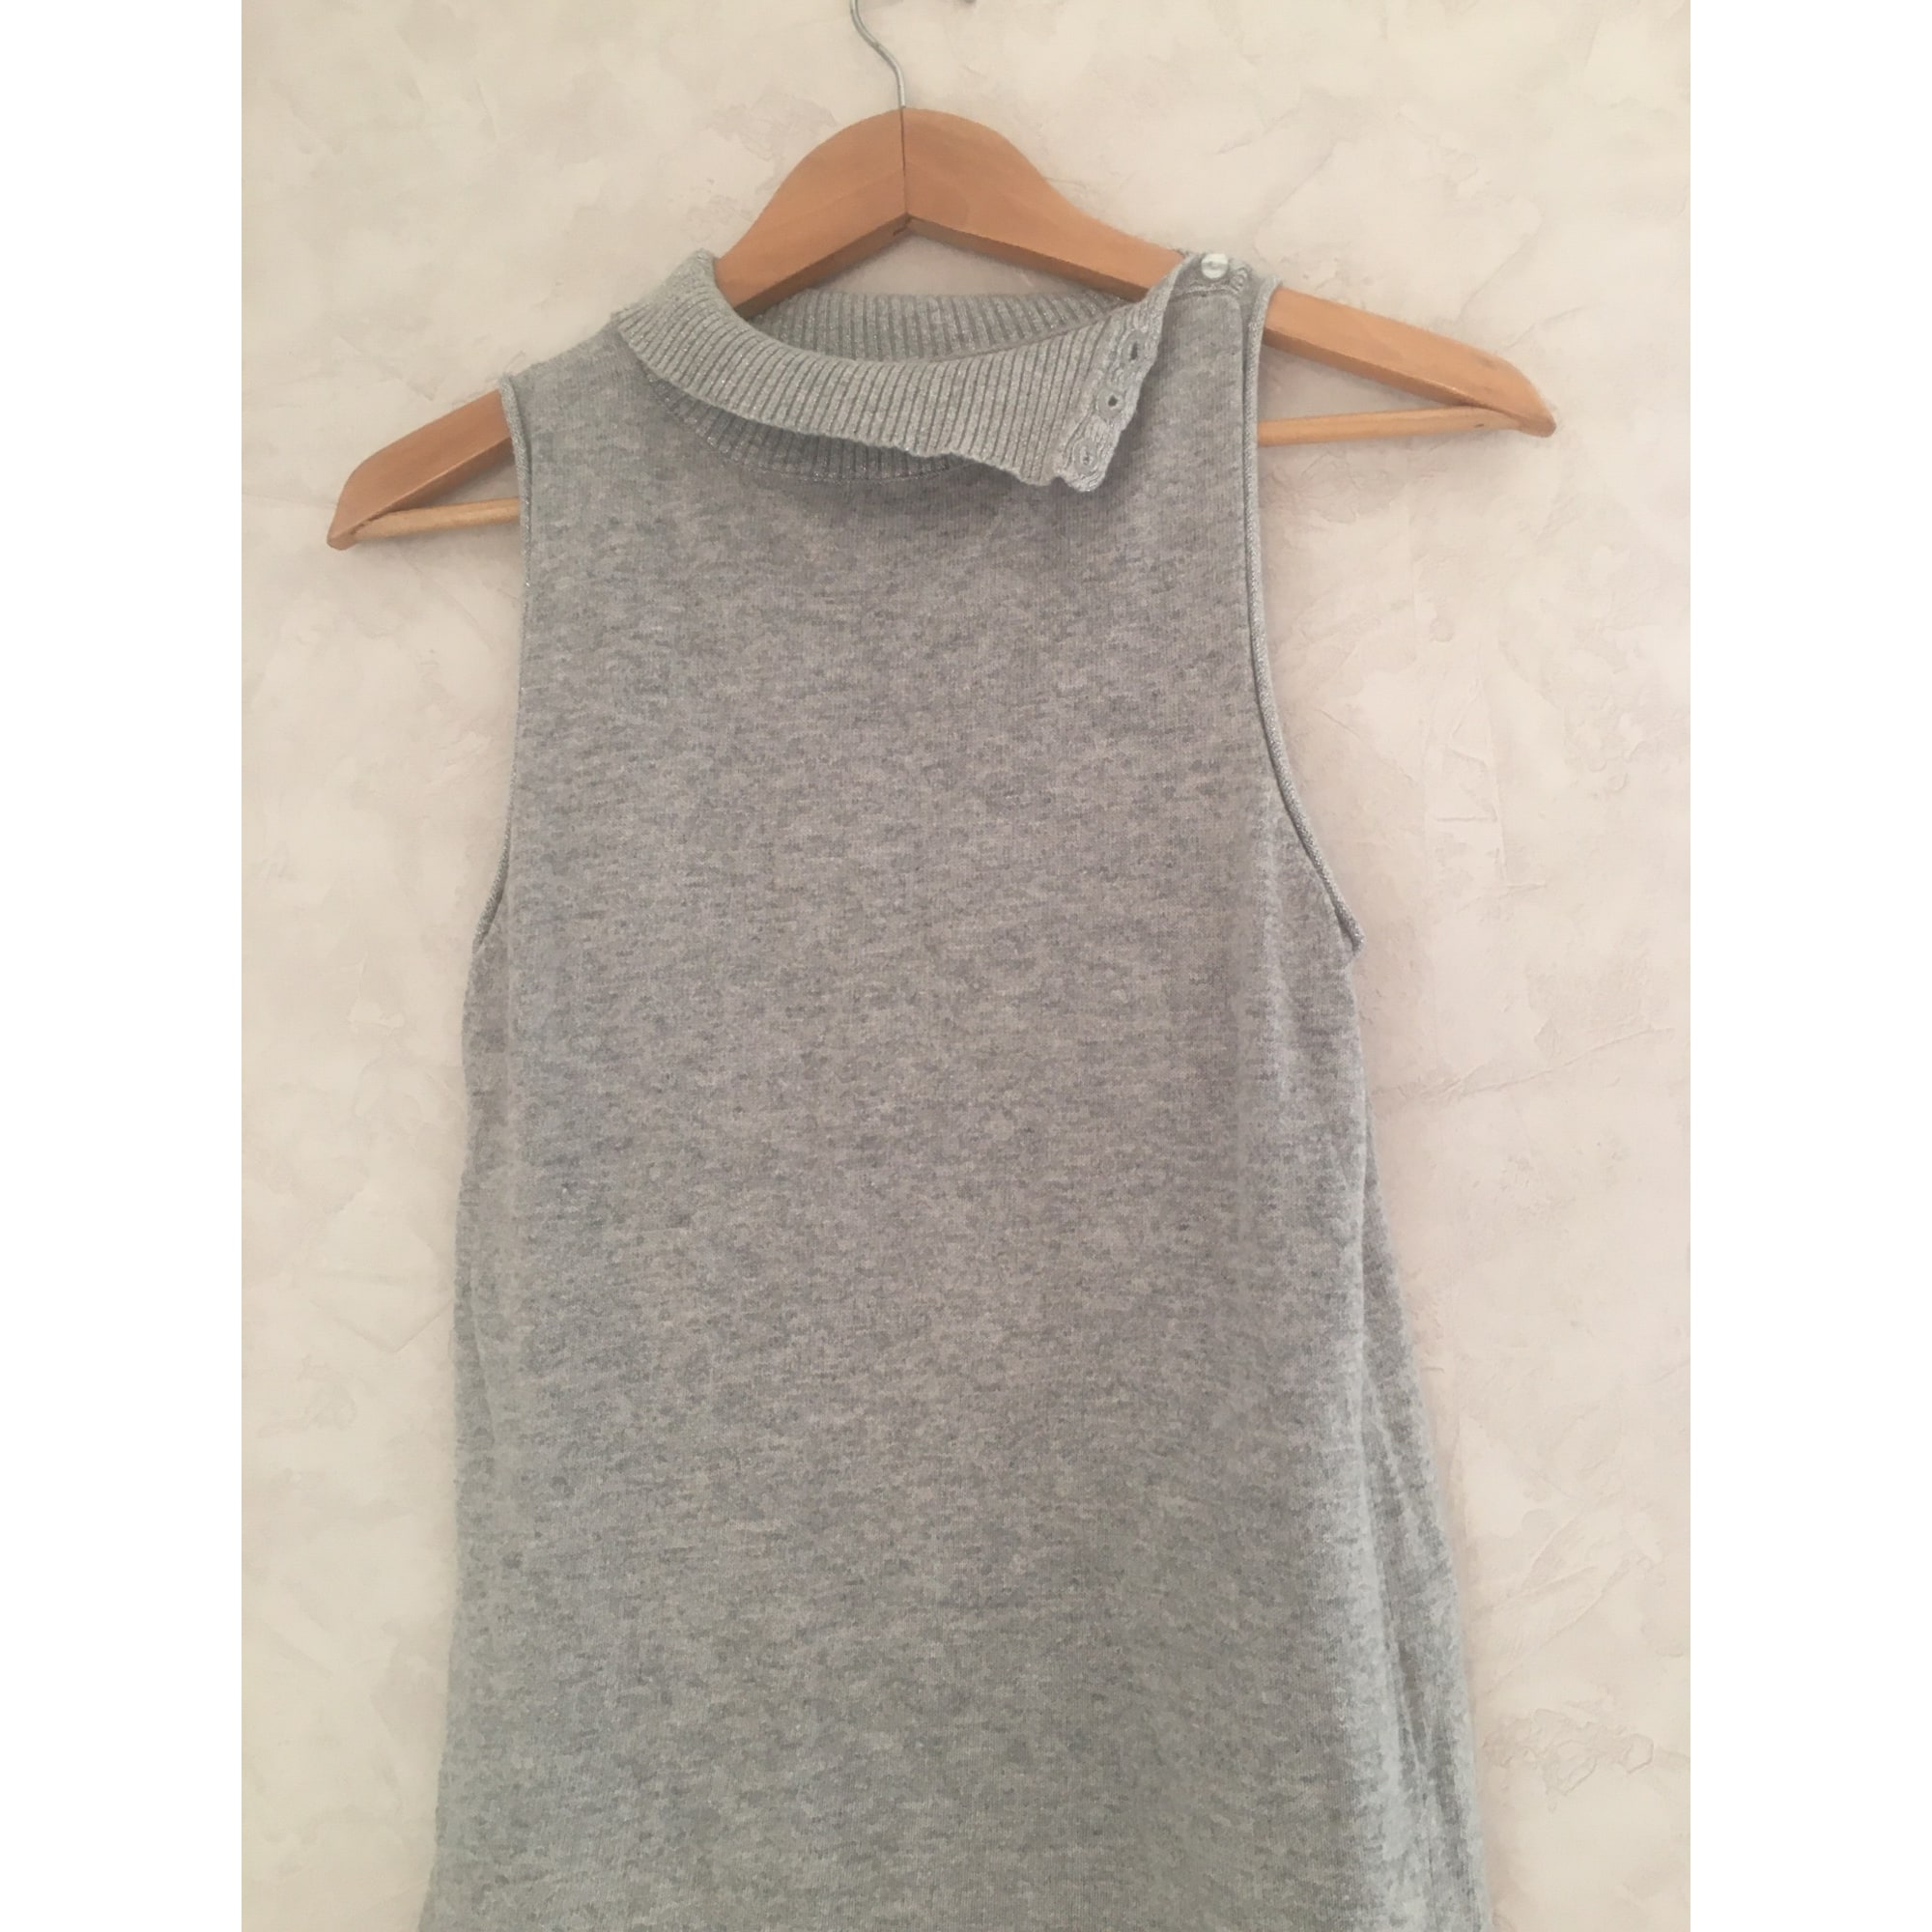 Pull VINTAGE Gris, anthracite